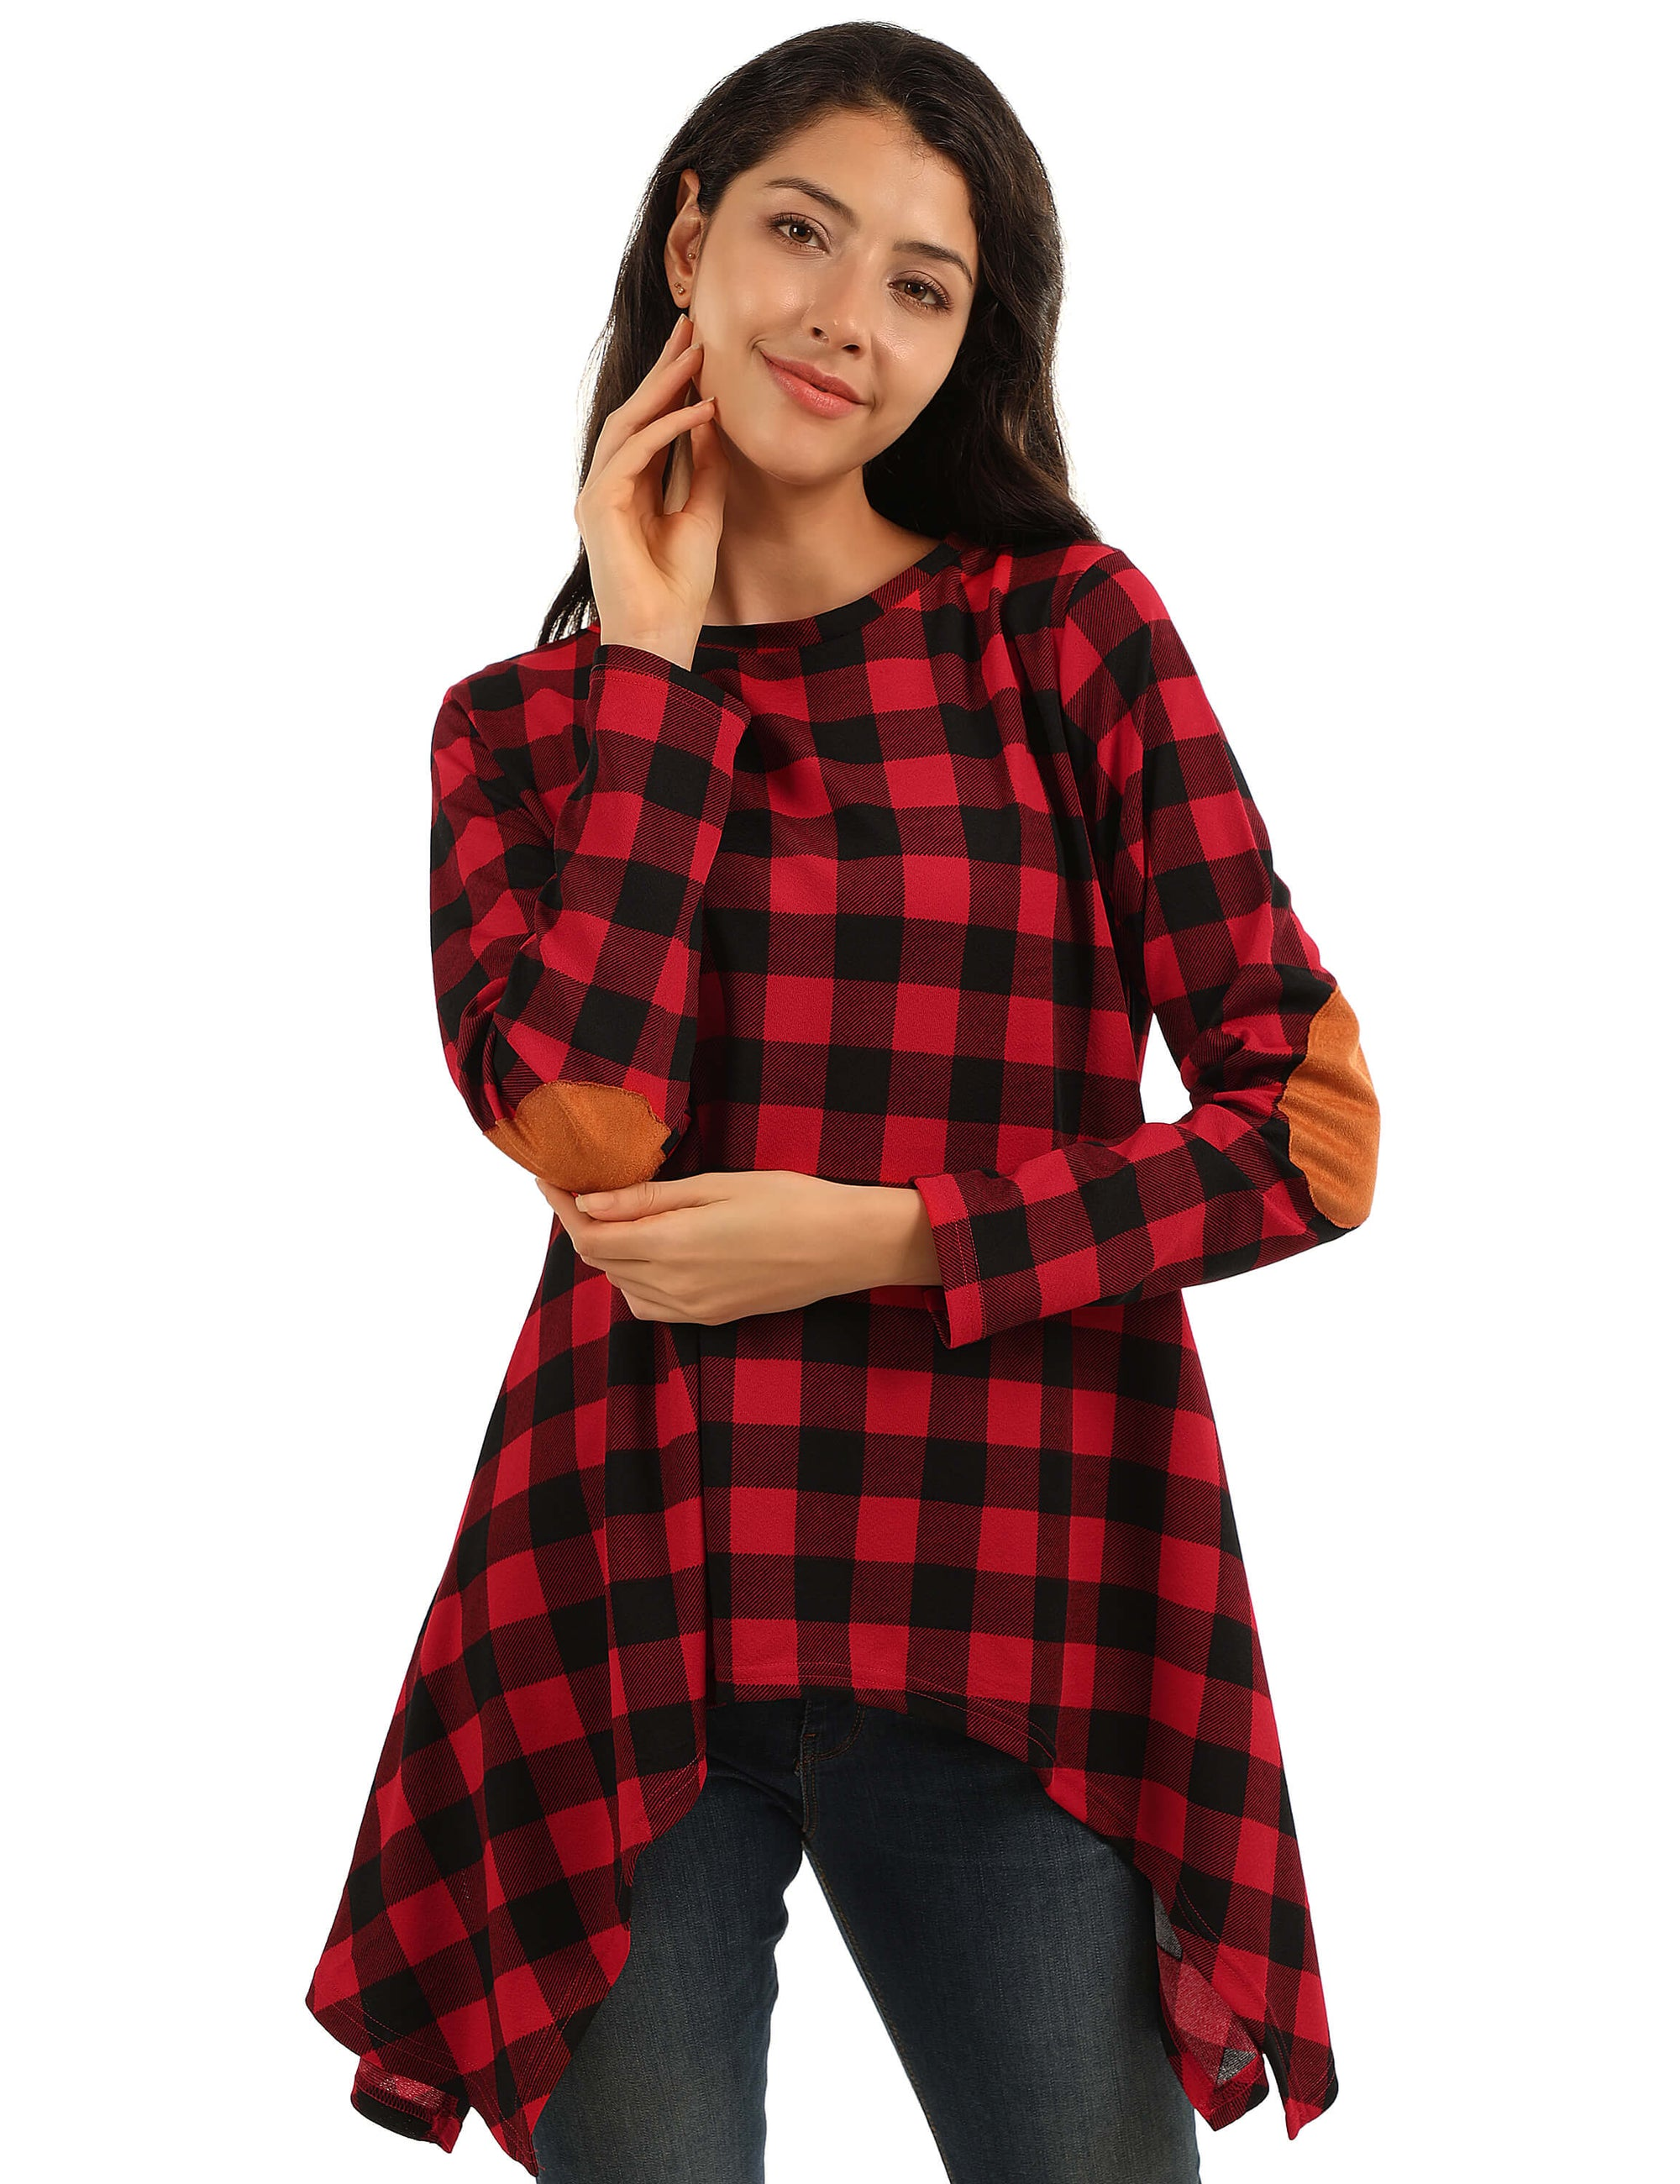 Blooming Jelly_Elbow Patchwork Irregular Hemline Tunic Top_Red Plaid_155221_17_Women Loose Plaid Print_Tops_T-Shirt